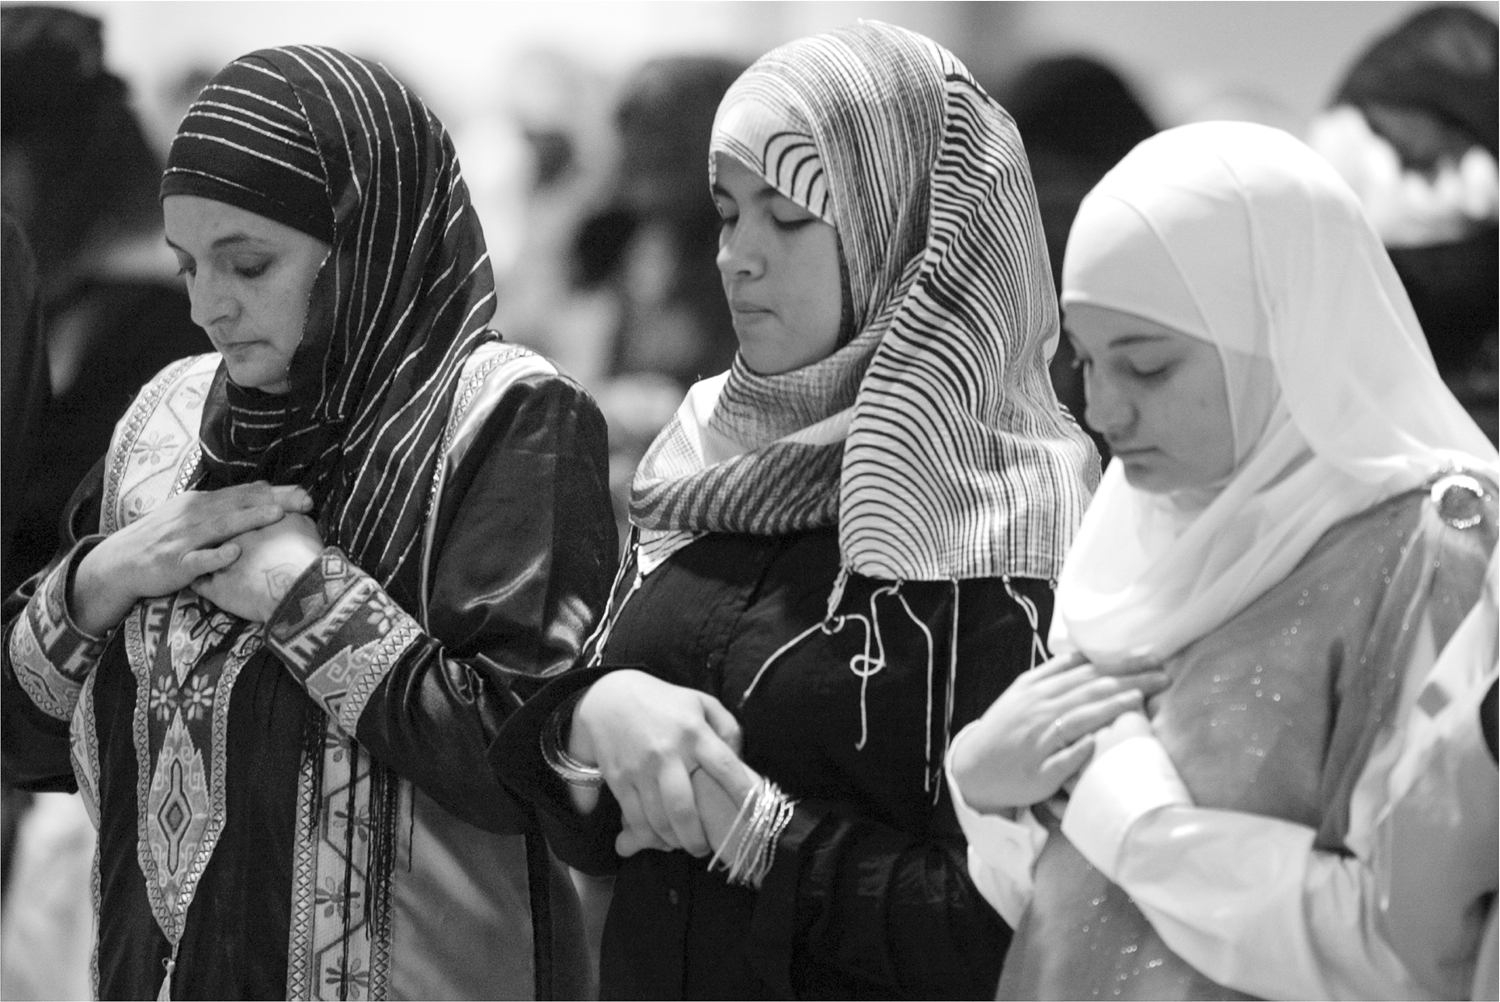 ther role of power in the muslim culture Gender role attitudes of migrants – the impact of religion and origin country context concerned with the role of islam in this.